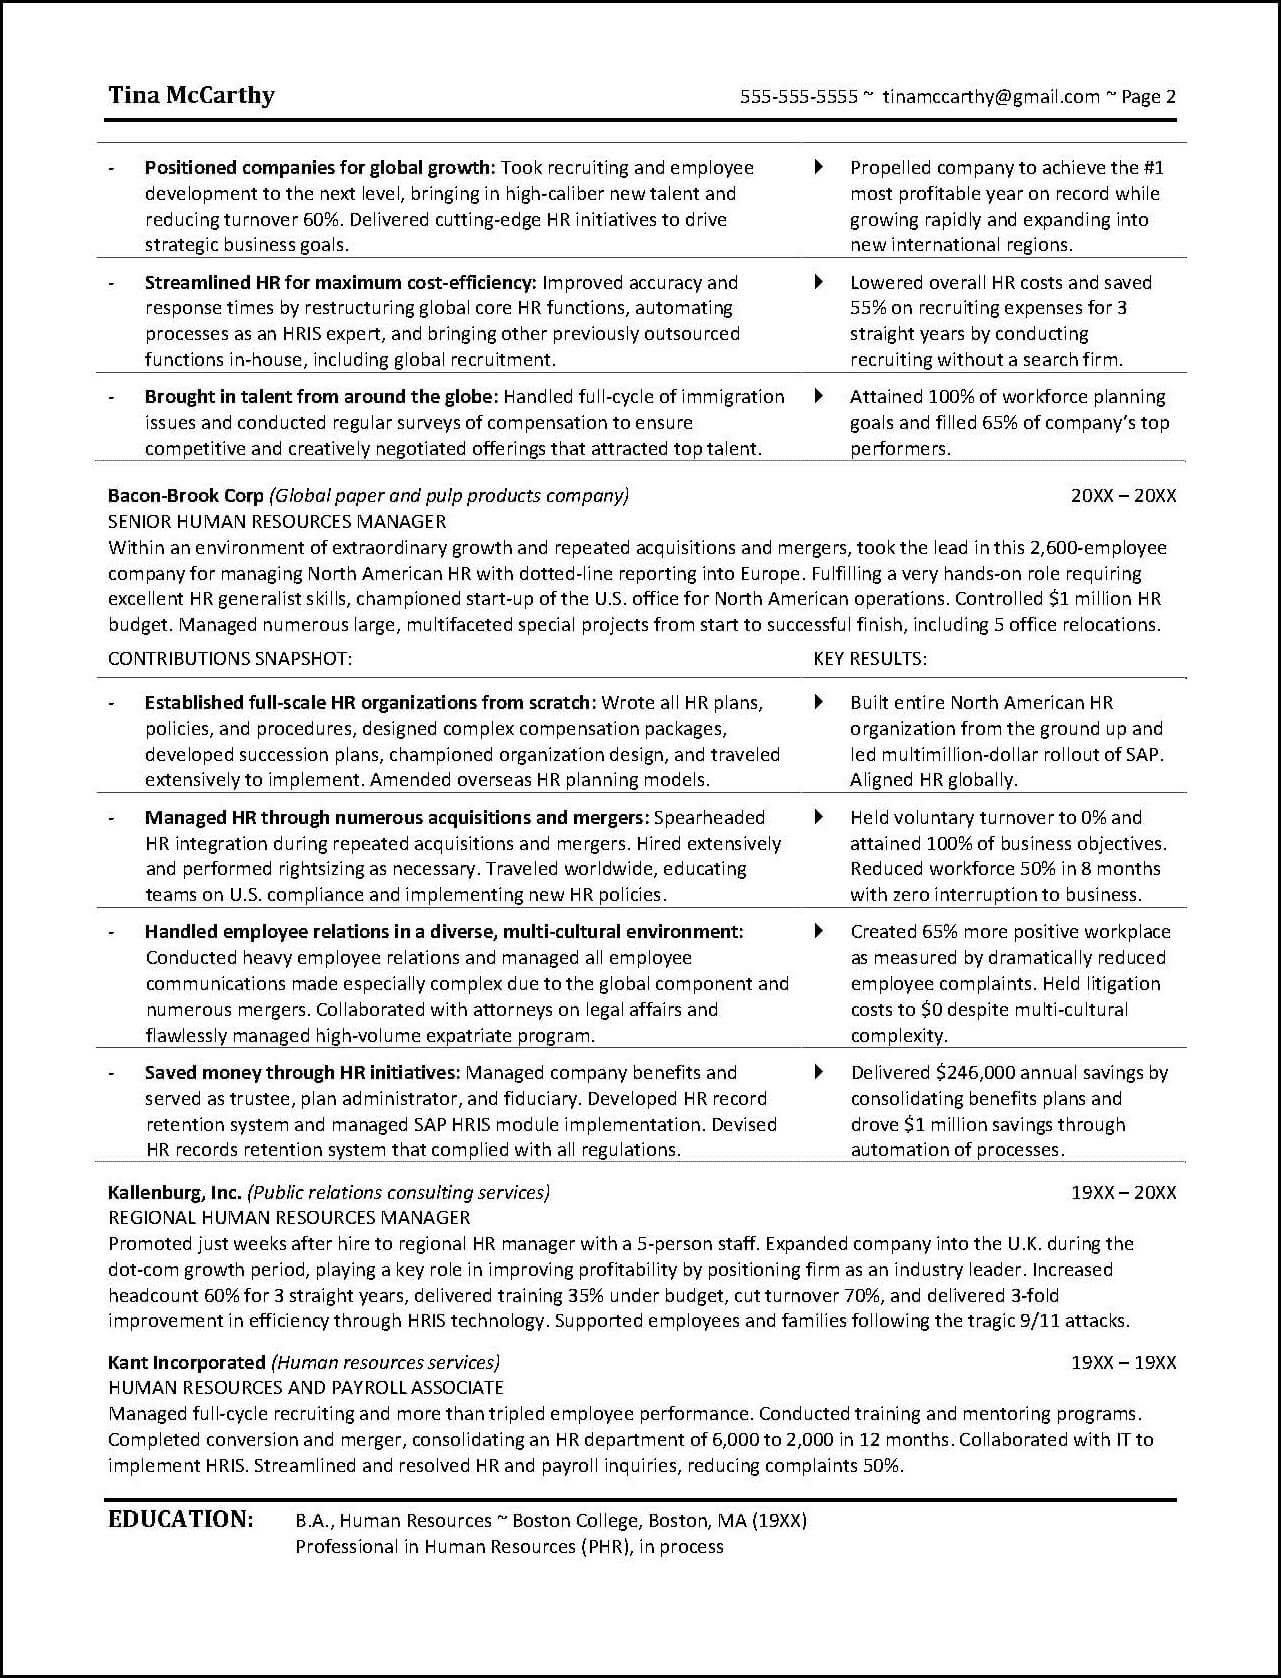 Human Resources Resume Page 2  Human Resource Resumes